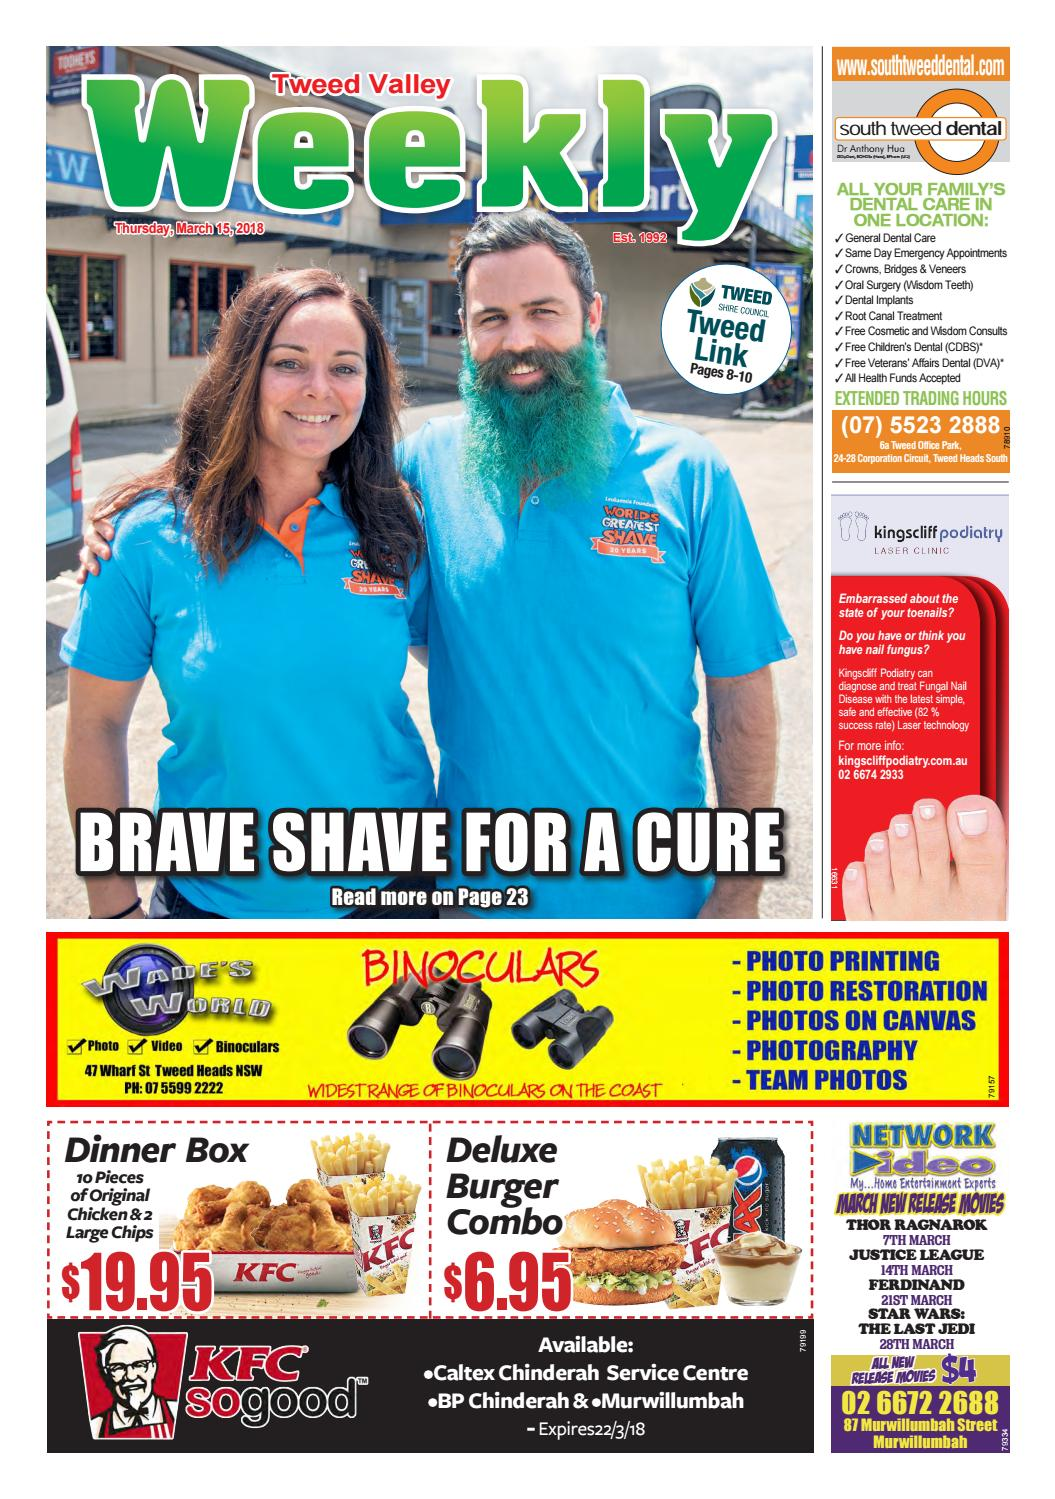 Tweed Valley Weekly, March 15, 2018 by Tweed Valley Weekly